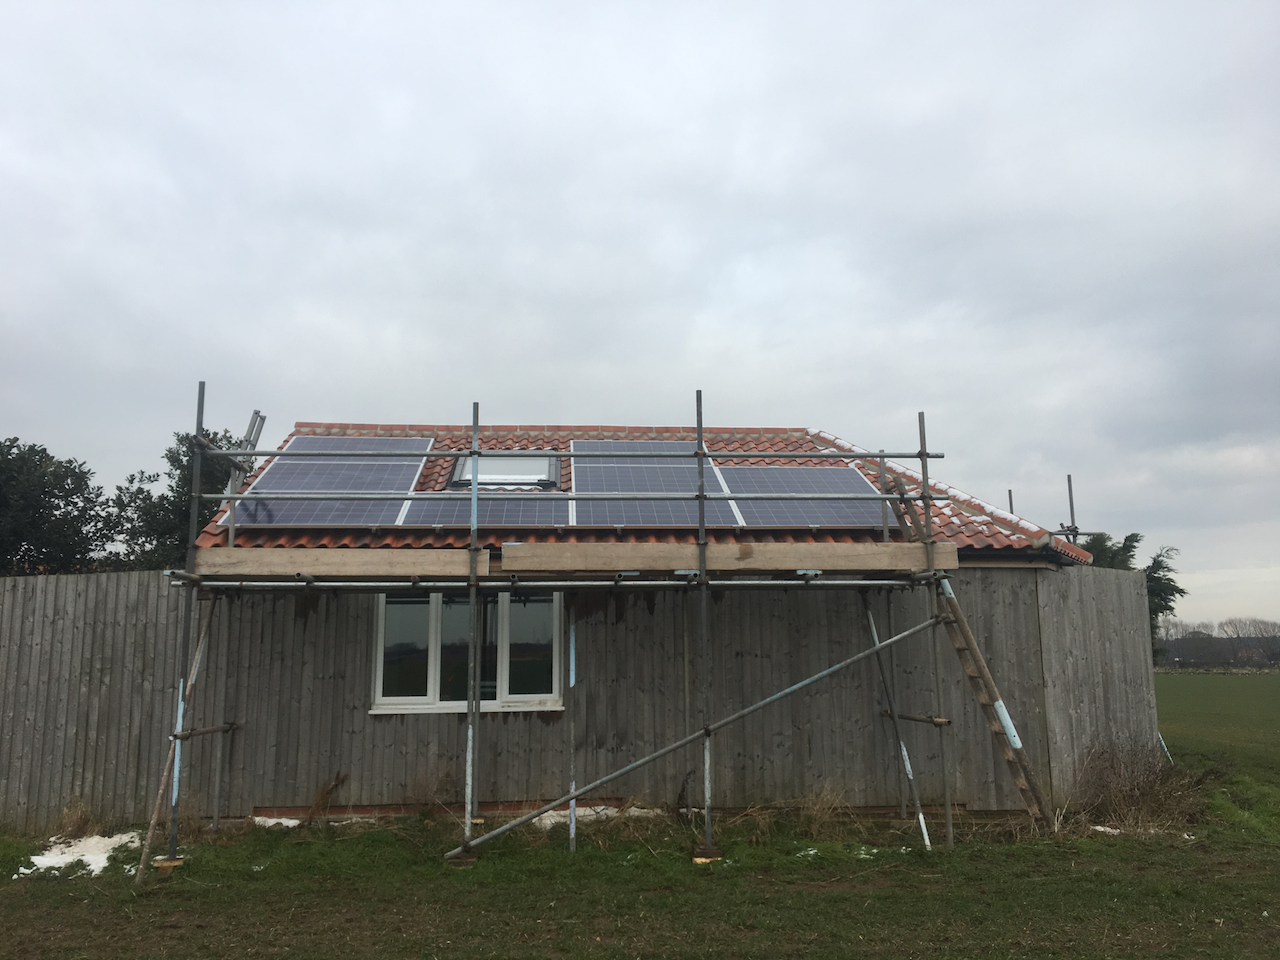 https://www.bluedotroofing.uk/wp-content/uploads/2018/02/Solar-PV-Installtion-South-Clifton-Lincs-3.png